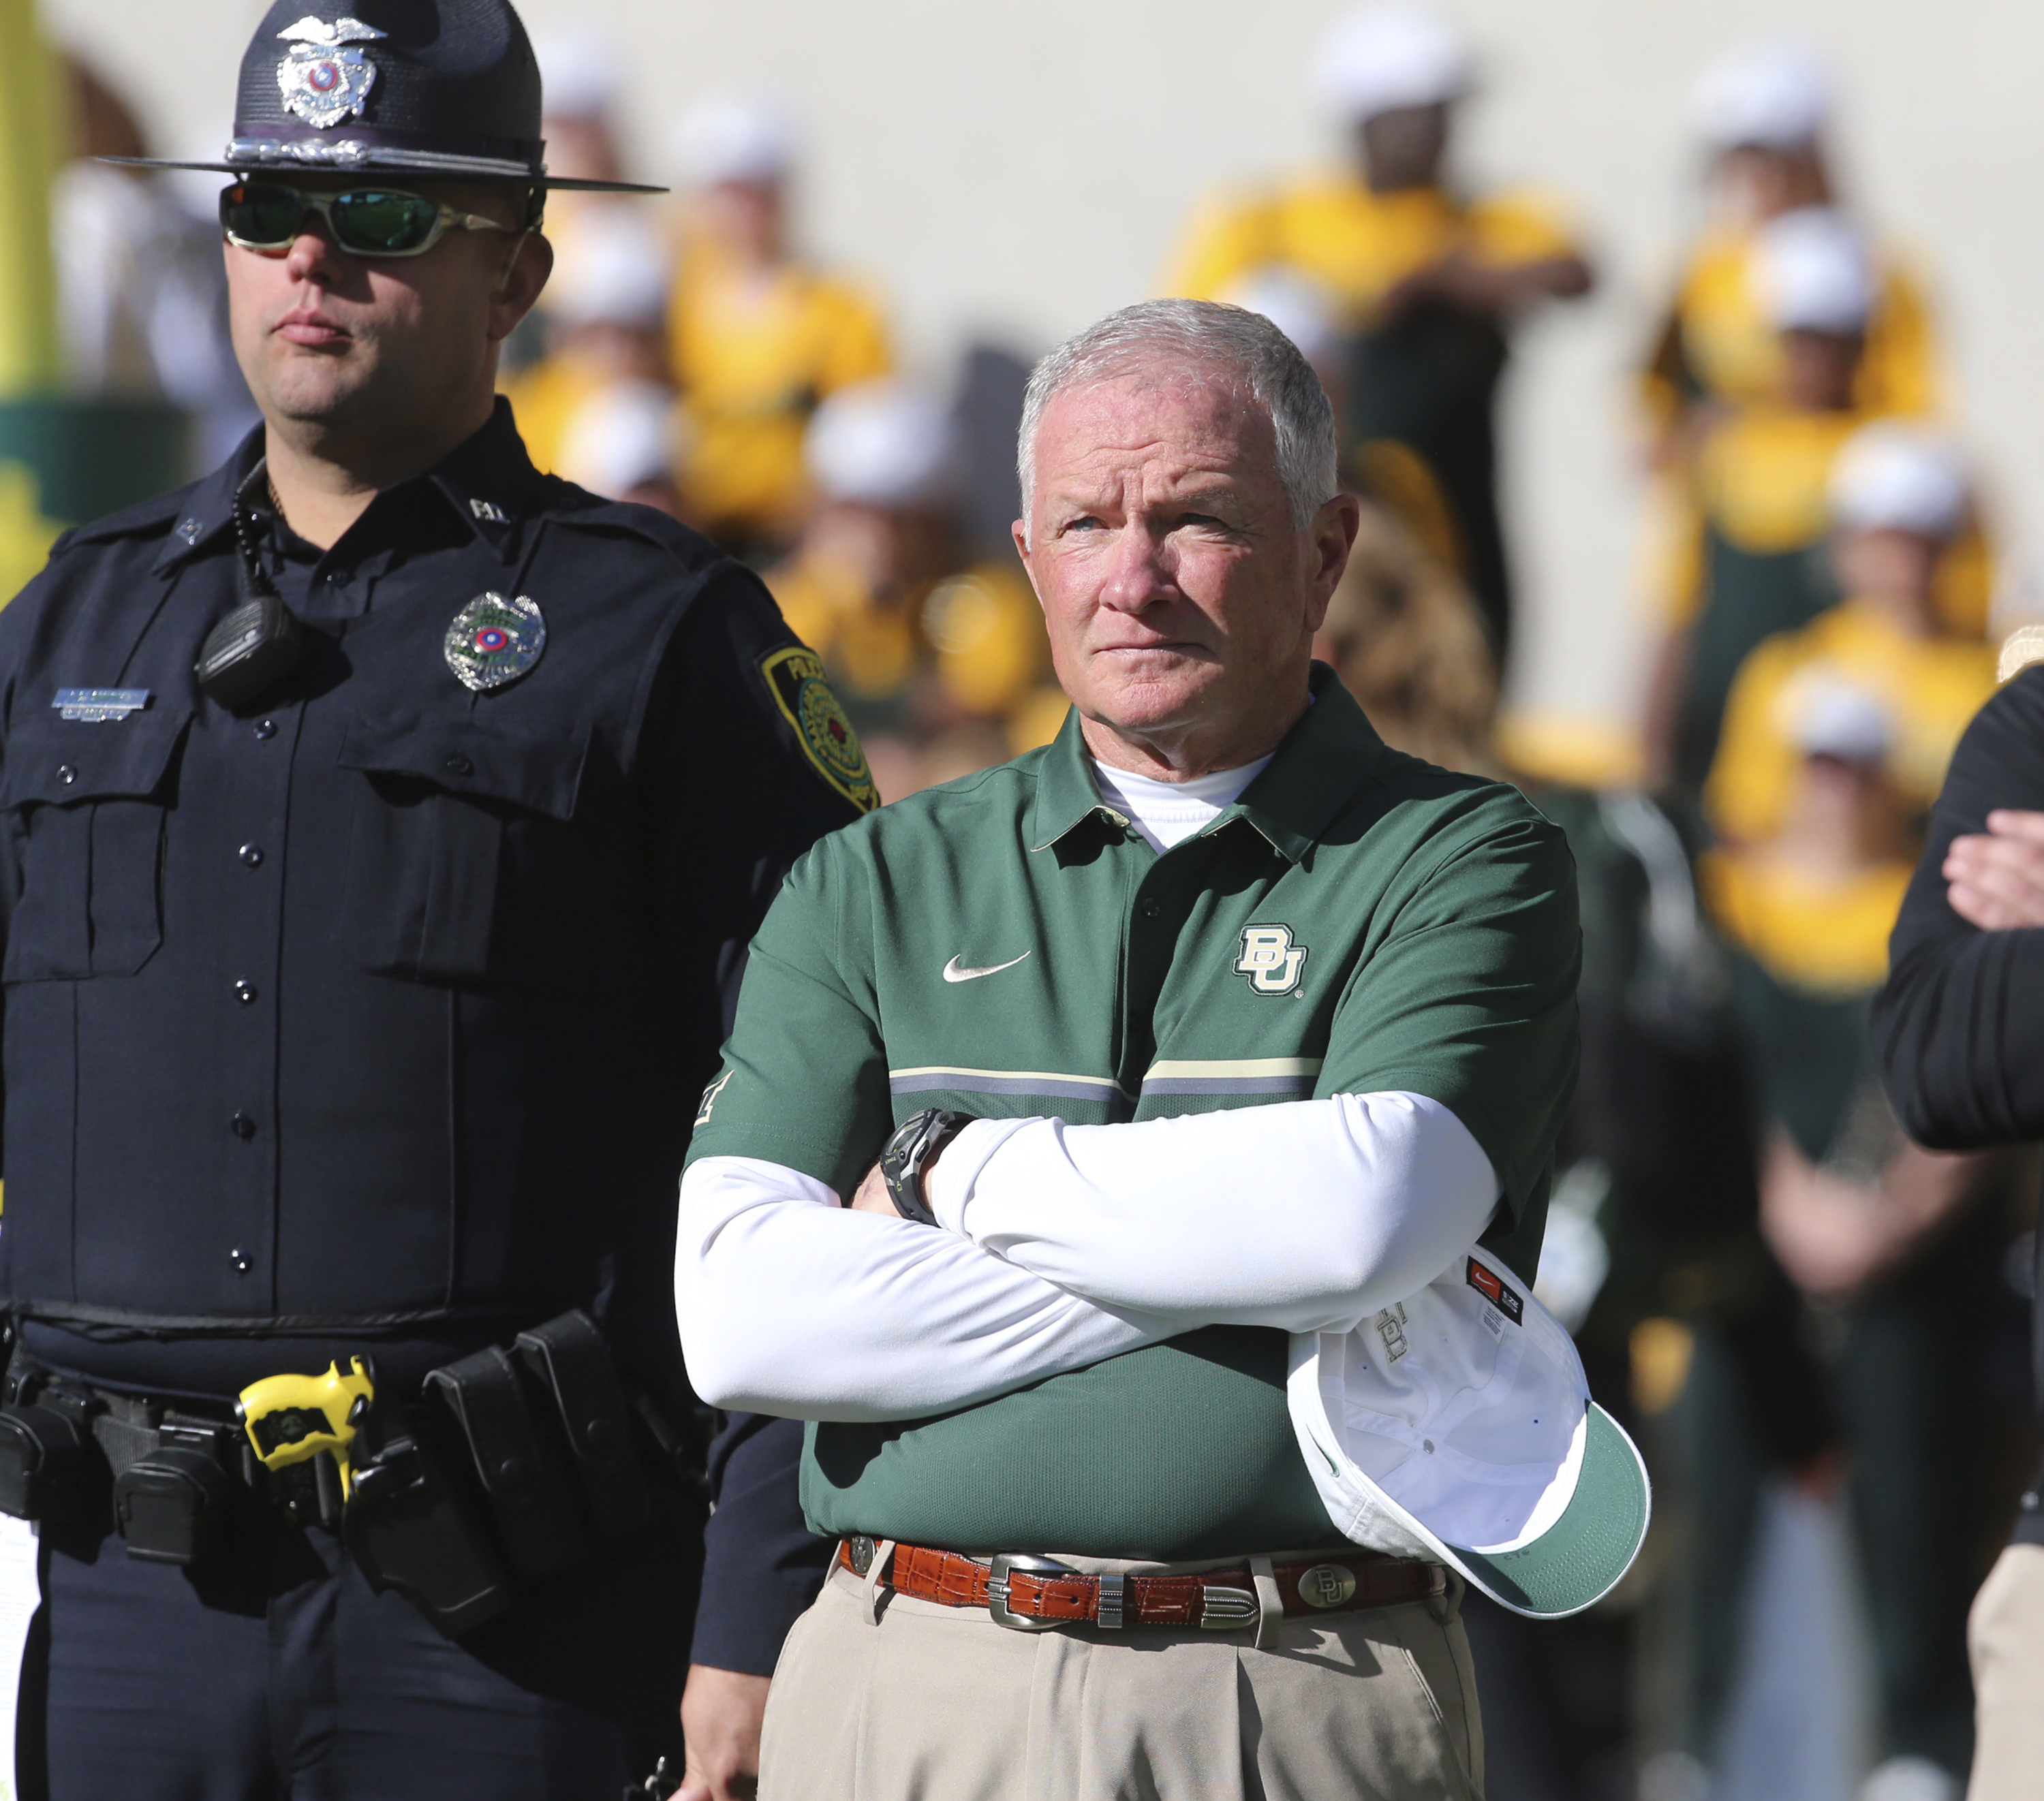 Baylor acting head coach Jim Grobe looks on following their NCAA college football game with Kansas State , Saturday, Nov. 19, 2016, in Waco, Texas. (Rod Aydelotte/Waco Tribune Herald via AP)